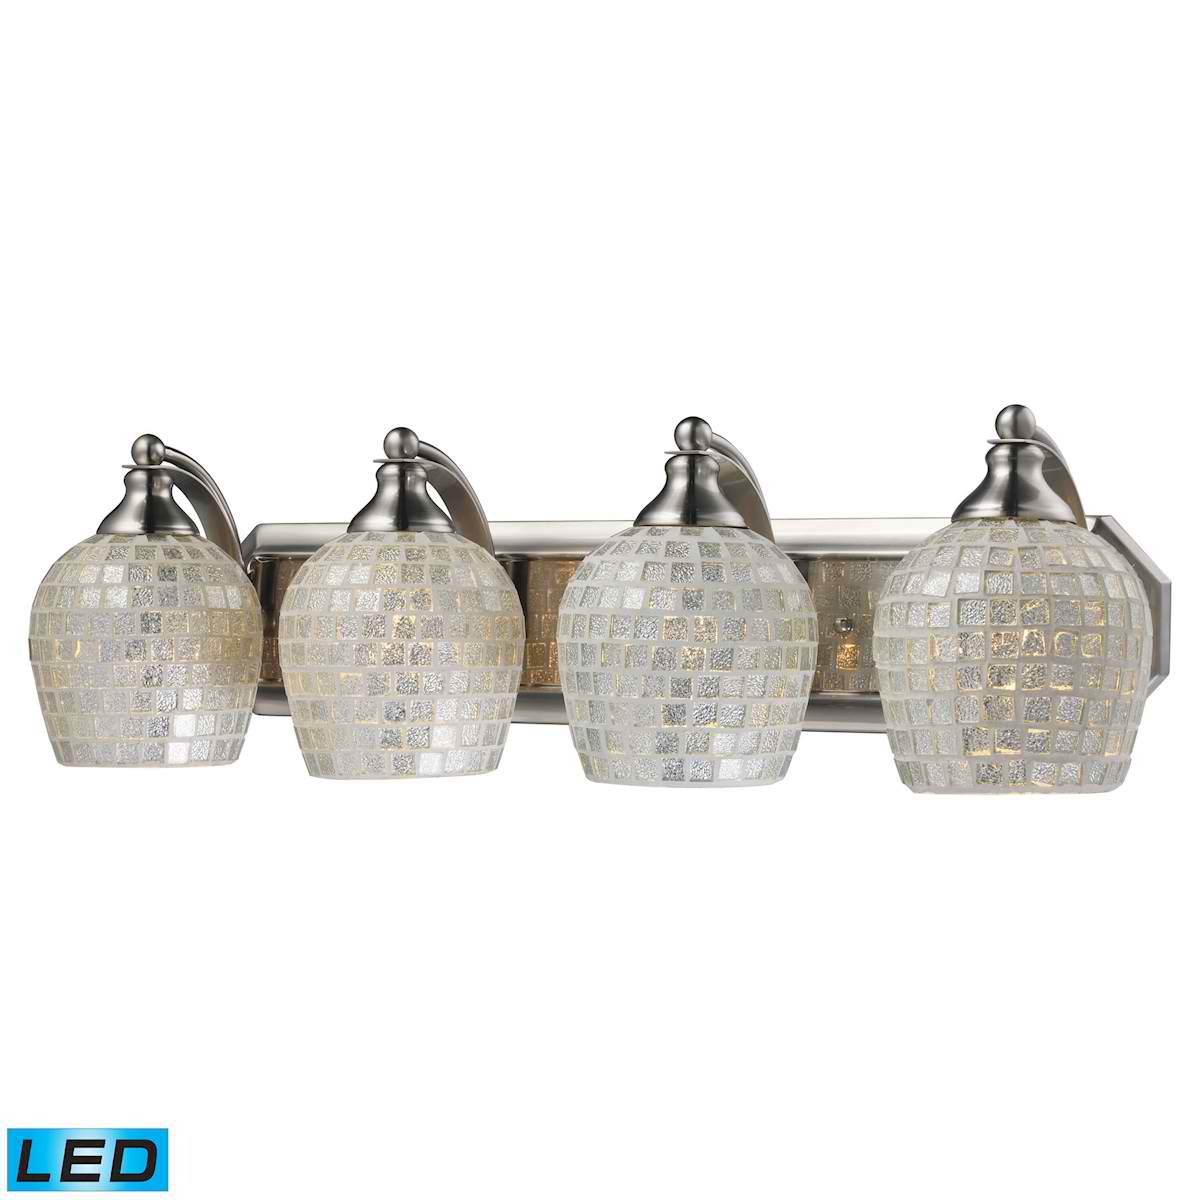 4 Light Vanity in Satin Nickel and Silver Mosaic Glass - LED, 800 Lumens (3200 Lumens Total) with Full Scale